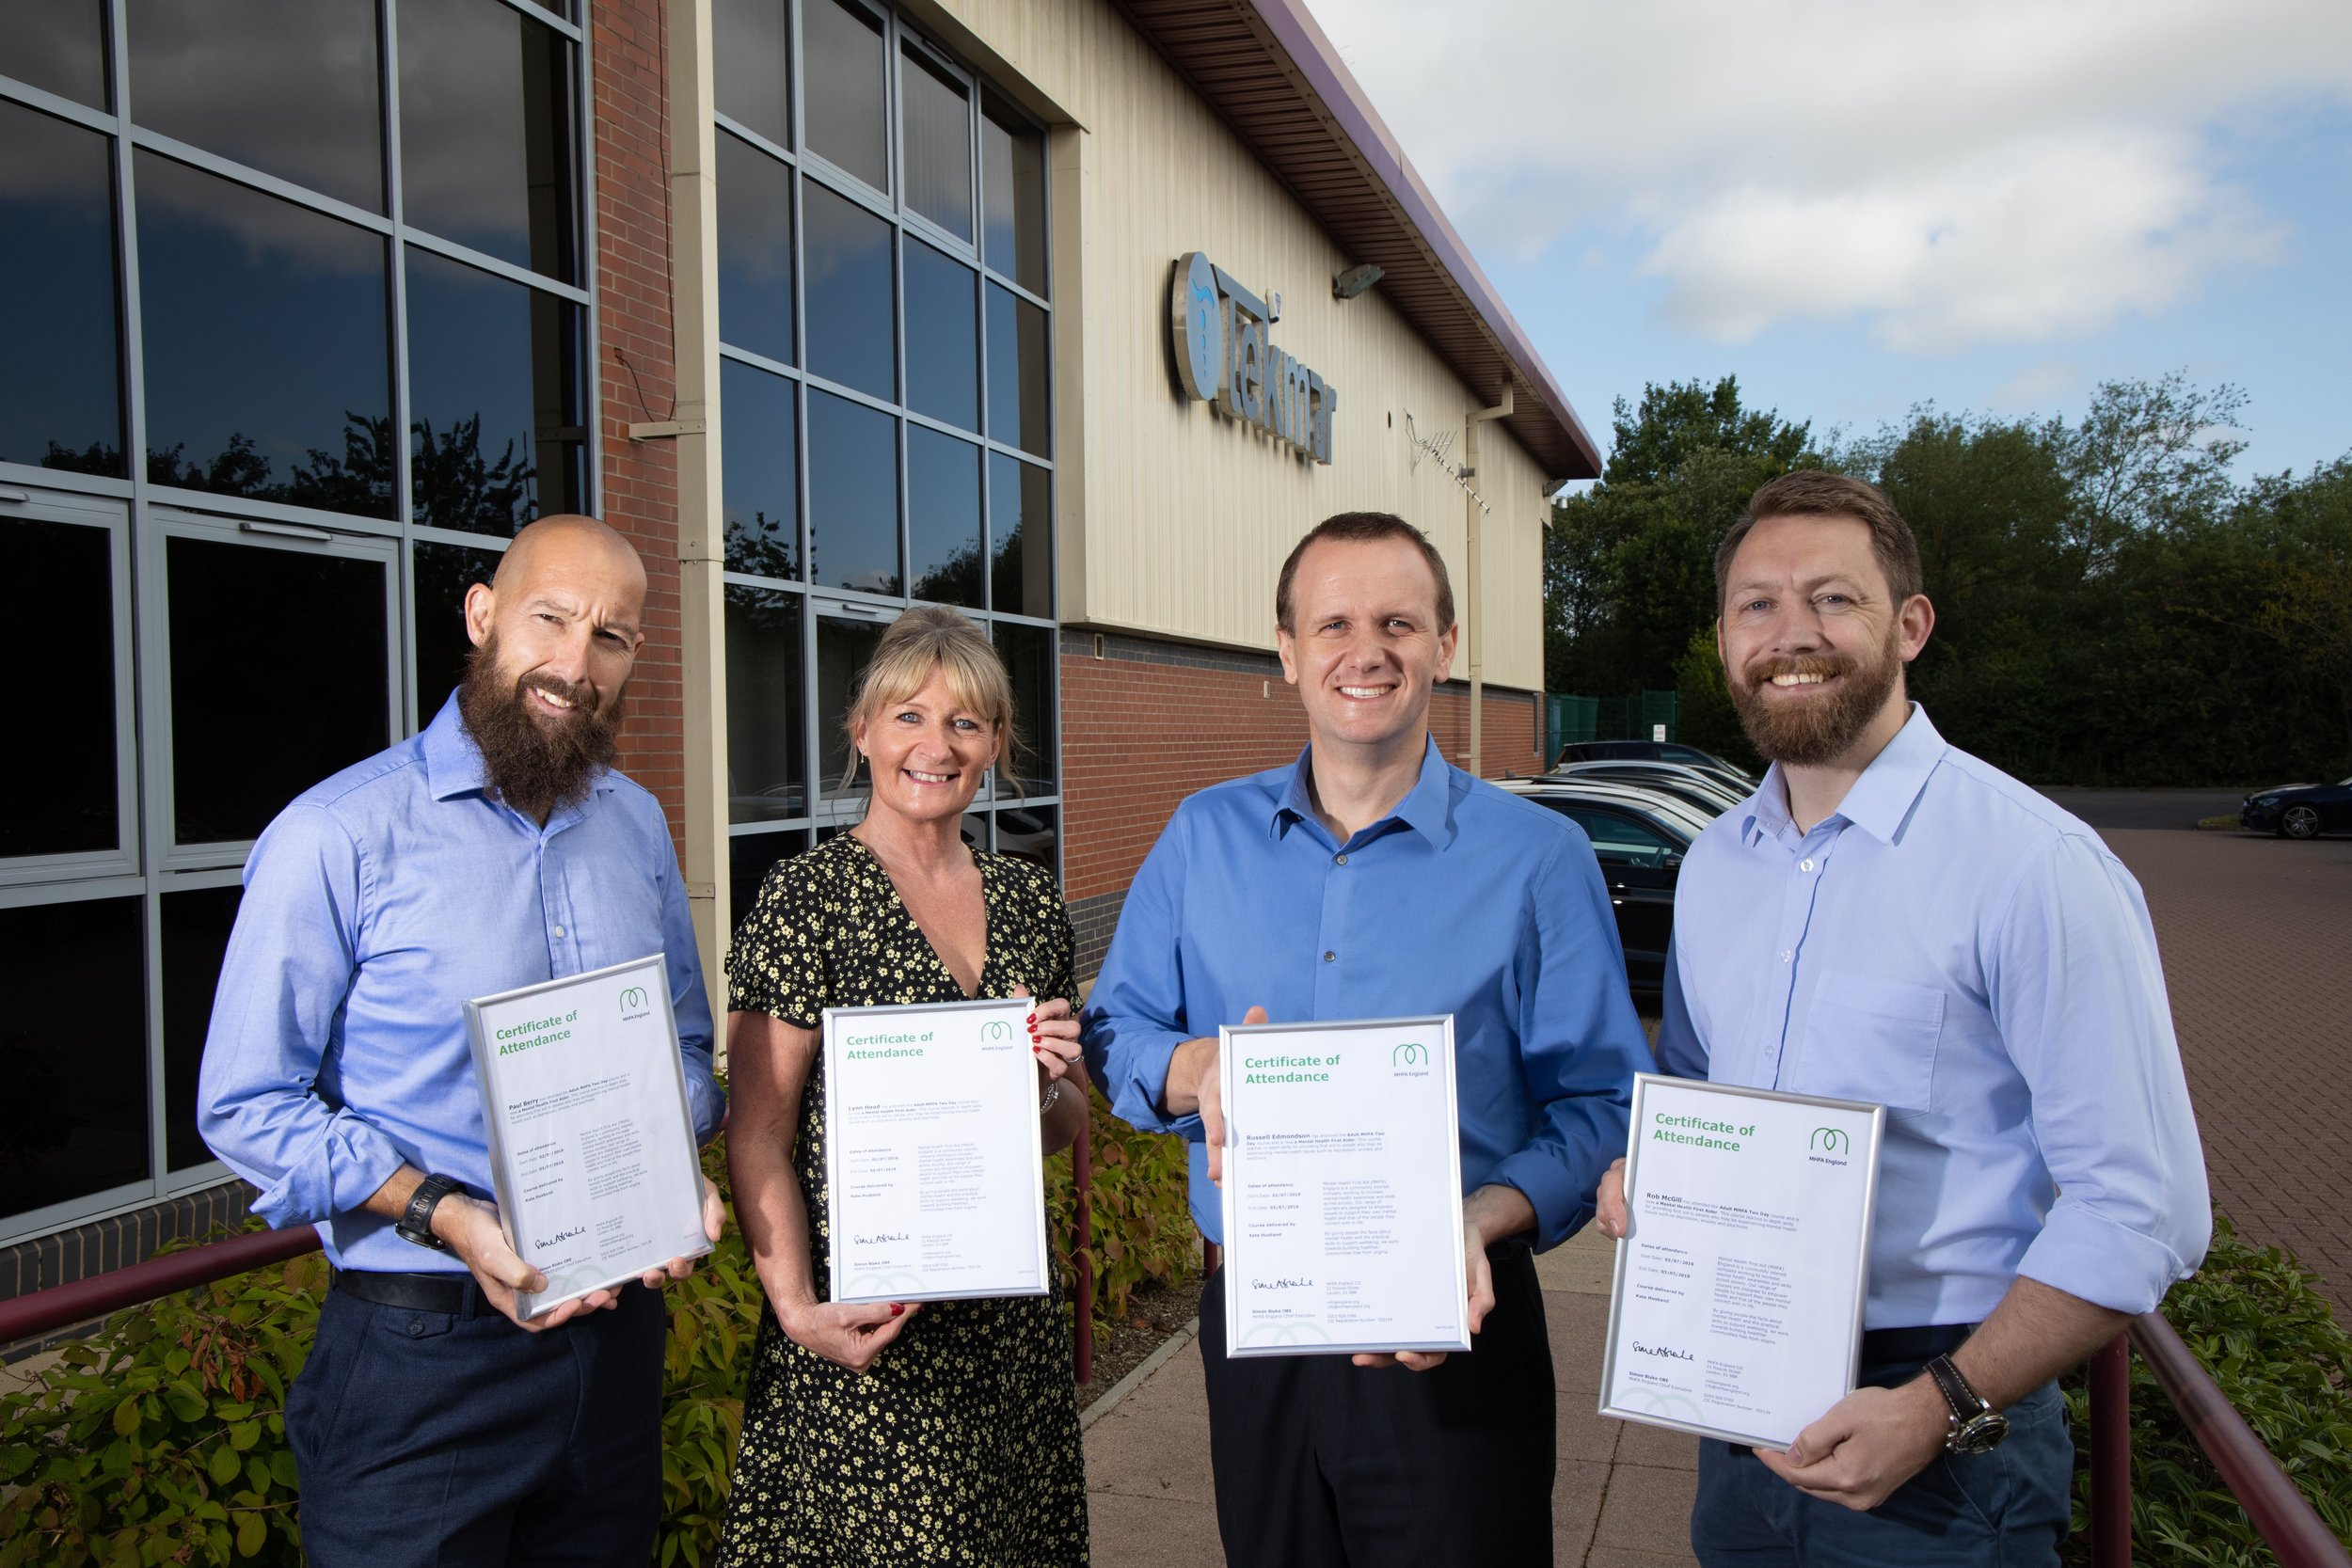 Photo caption: Tekmar launch new health and wellbeing initiative, including its first four mental health first aiders Paul Berry, Lynn Hood, Russell Edmondson and Rob McGill (pictured left to right).